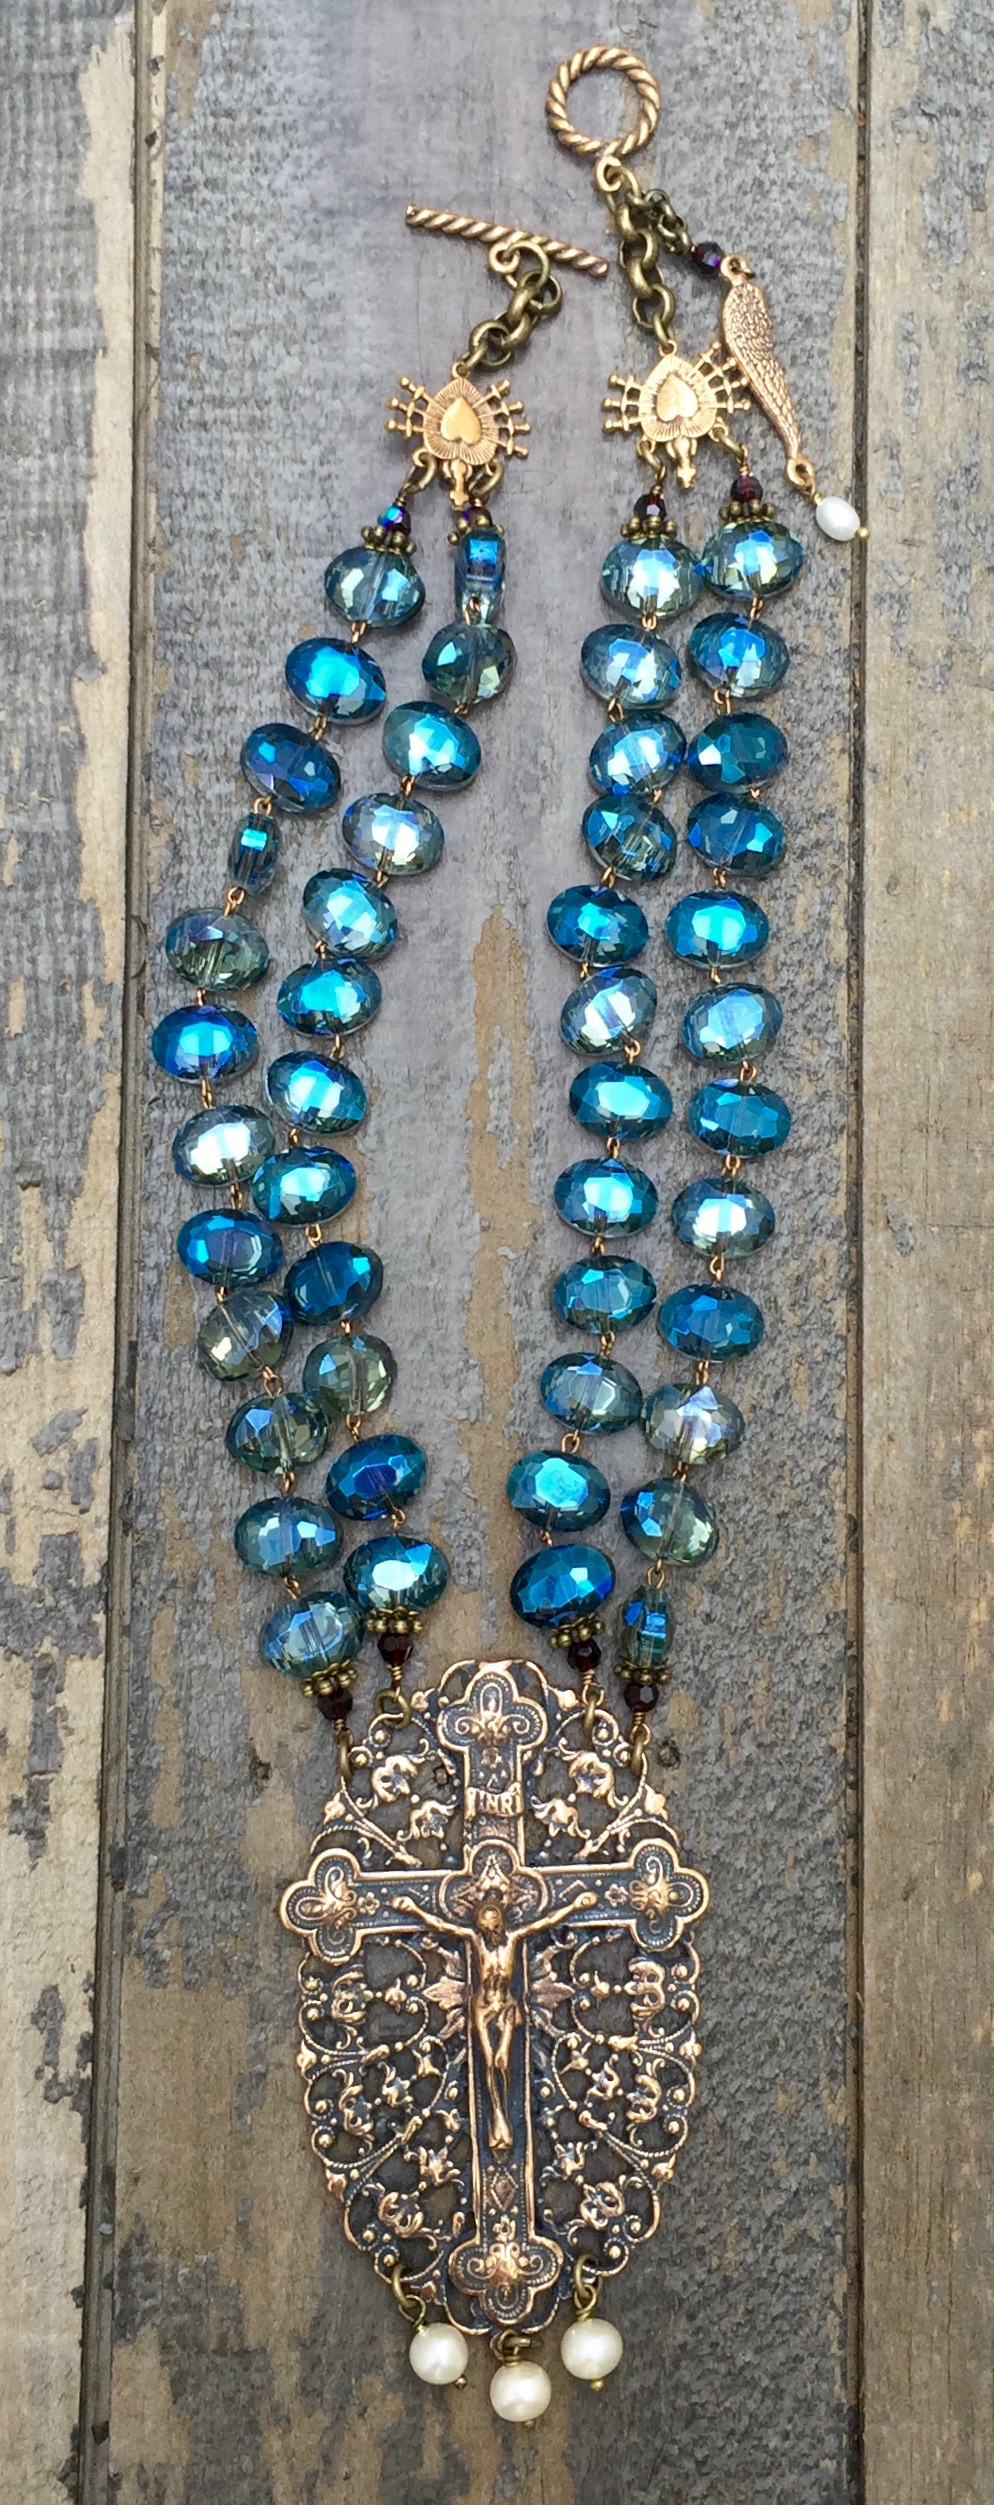 Blue and Garnet Crystal Necklace with Cream Pearls – 12mm